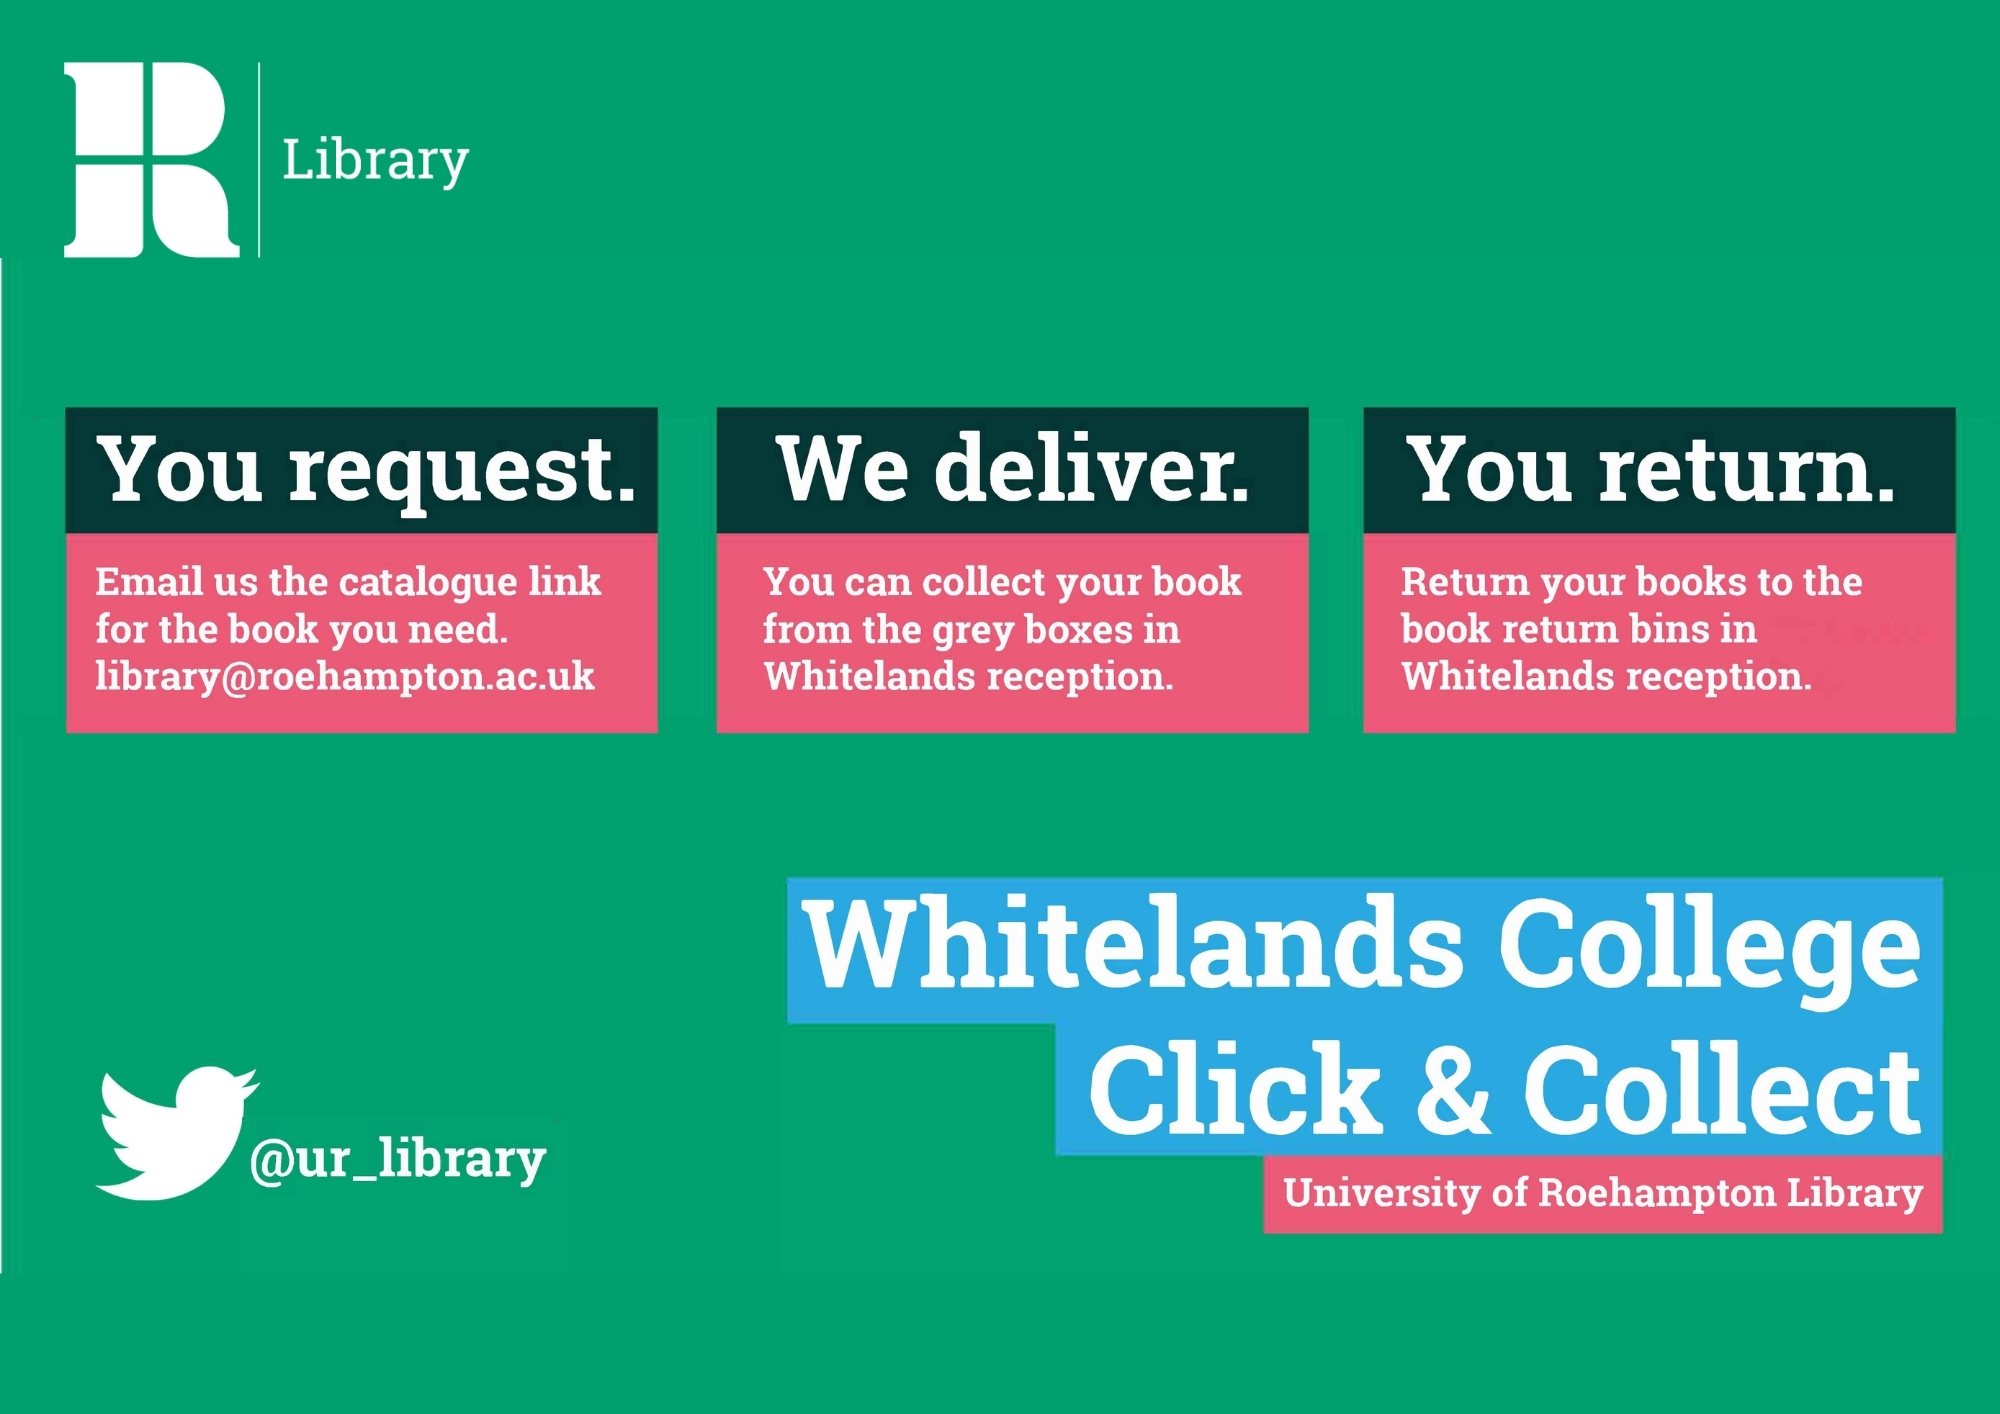 Click and Collect process and instructions